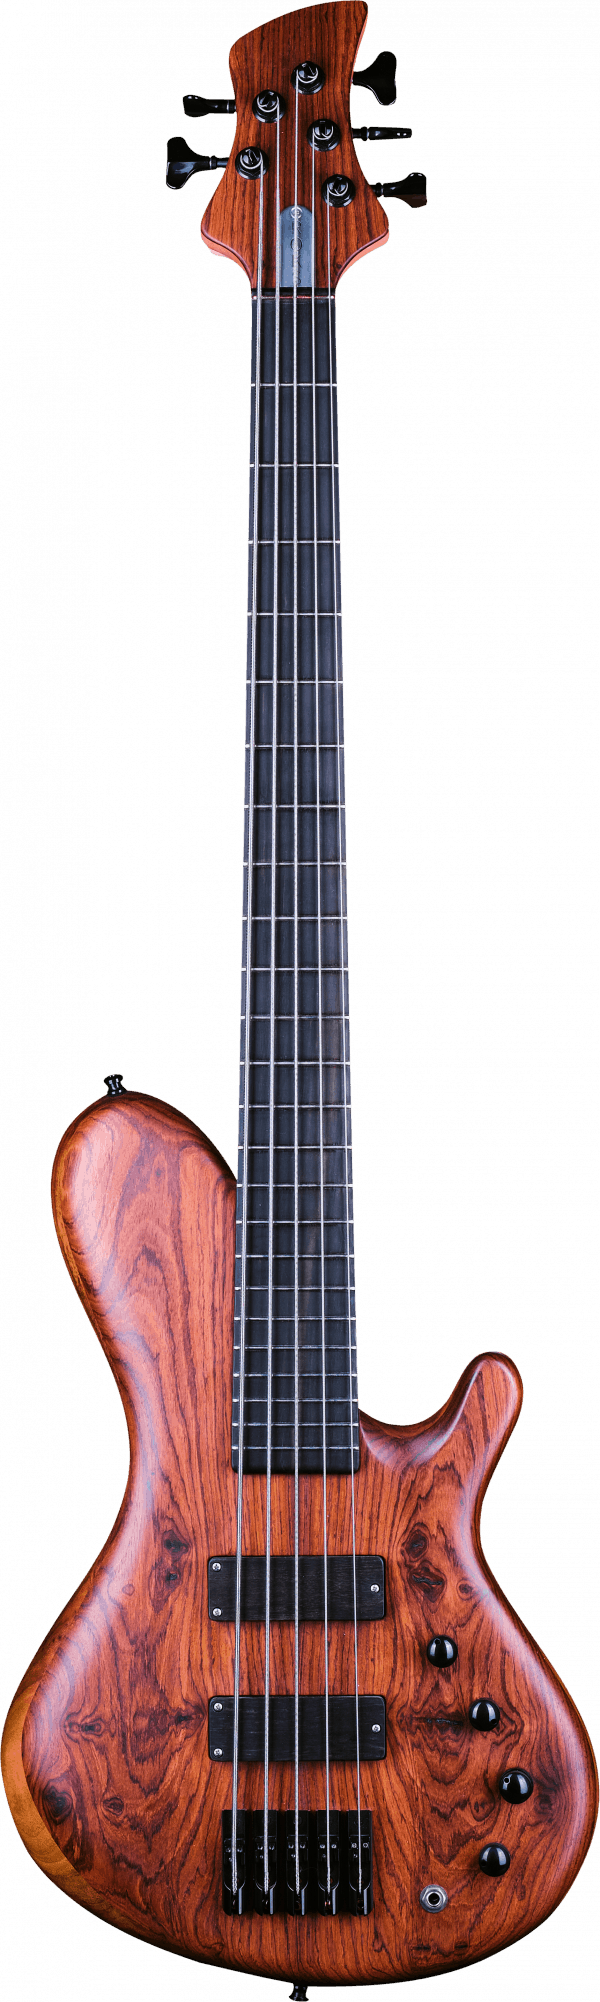 Roks Futura 5 With a Rosewood Top